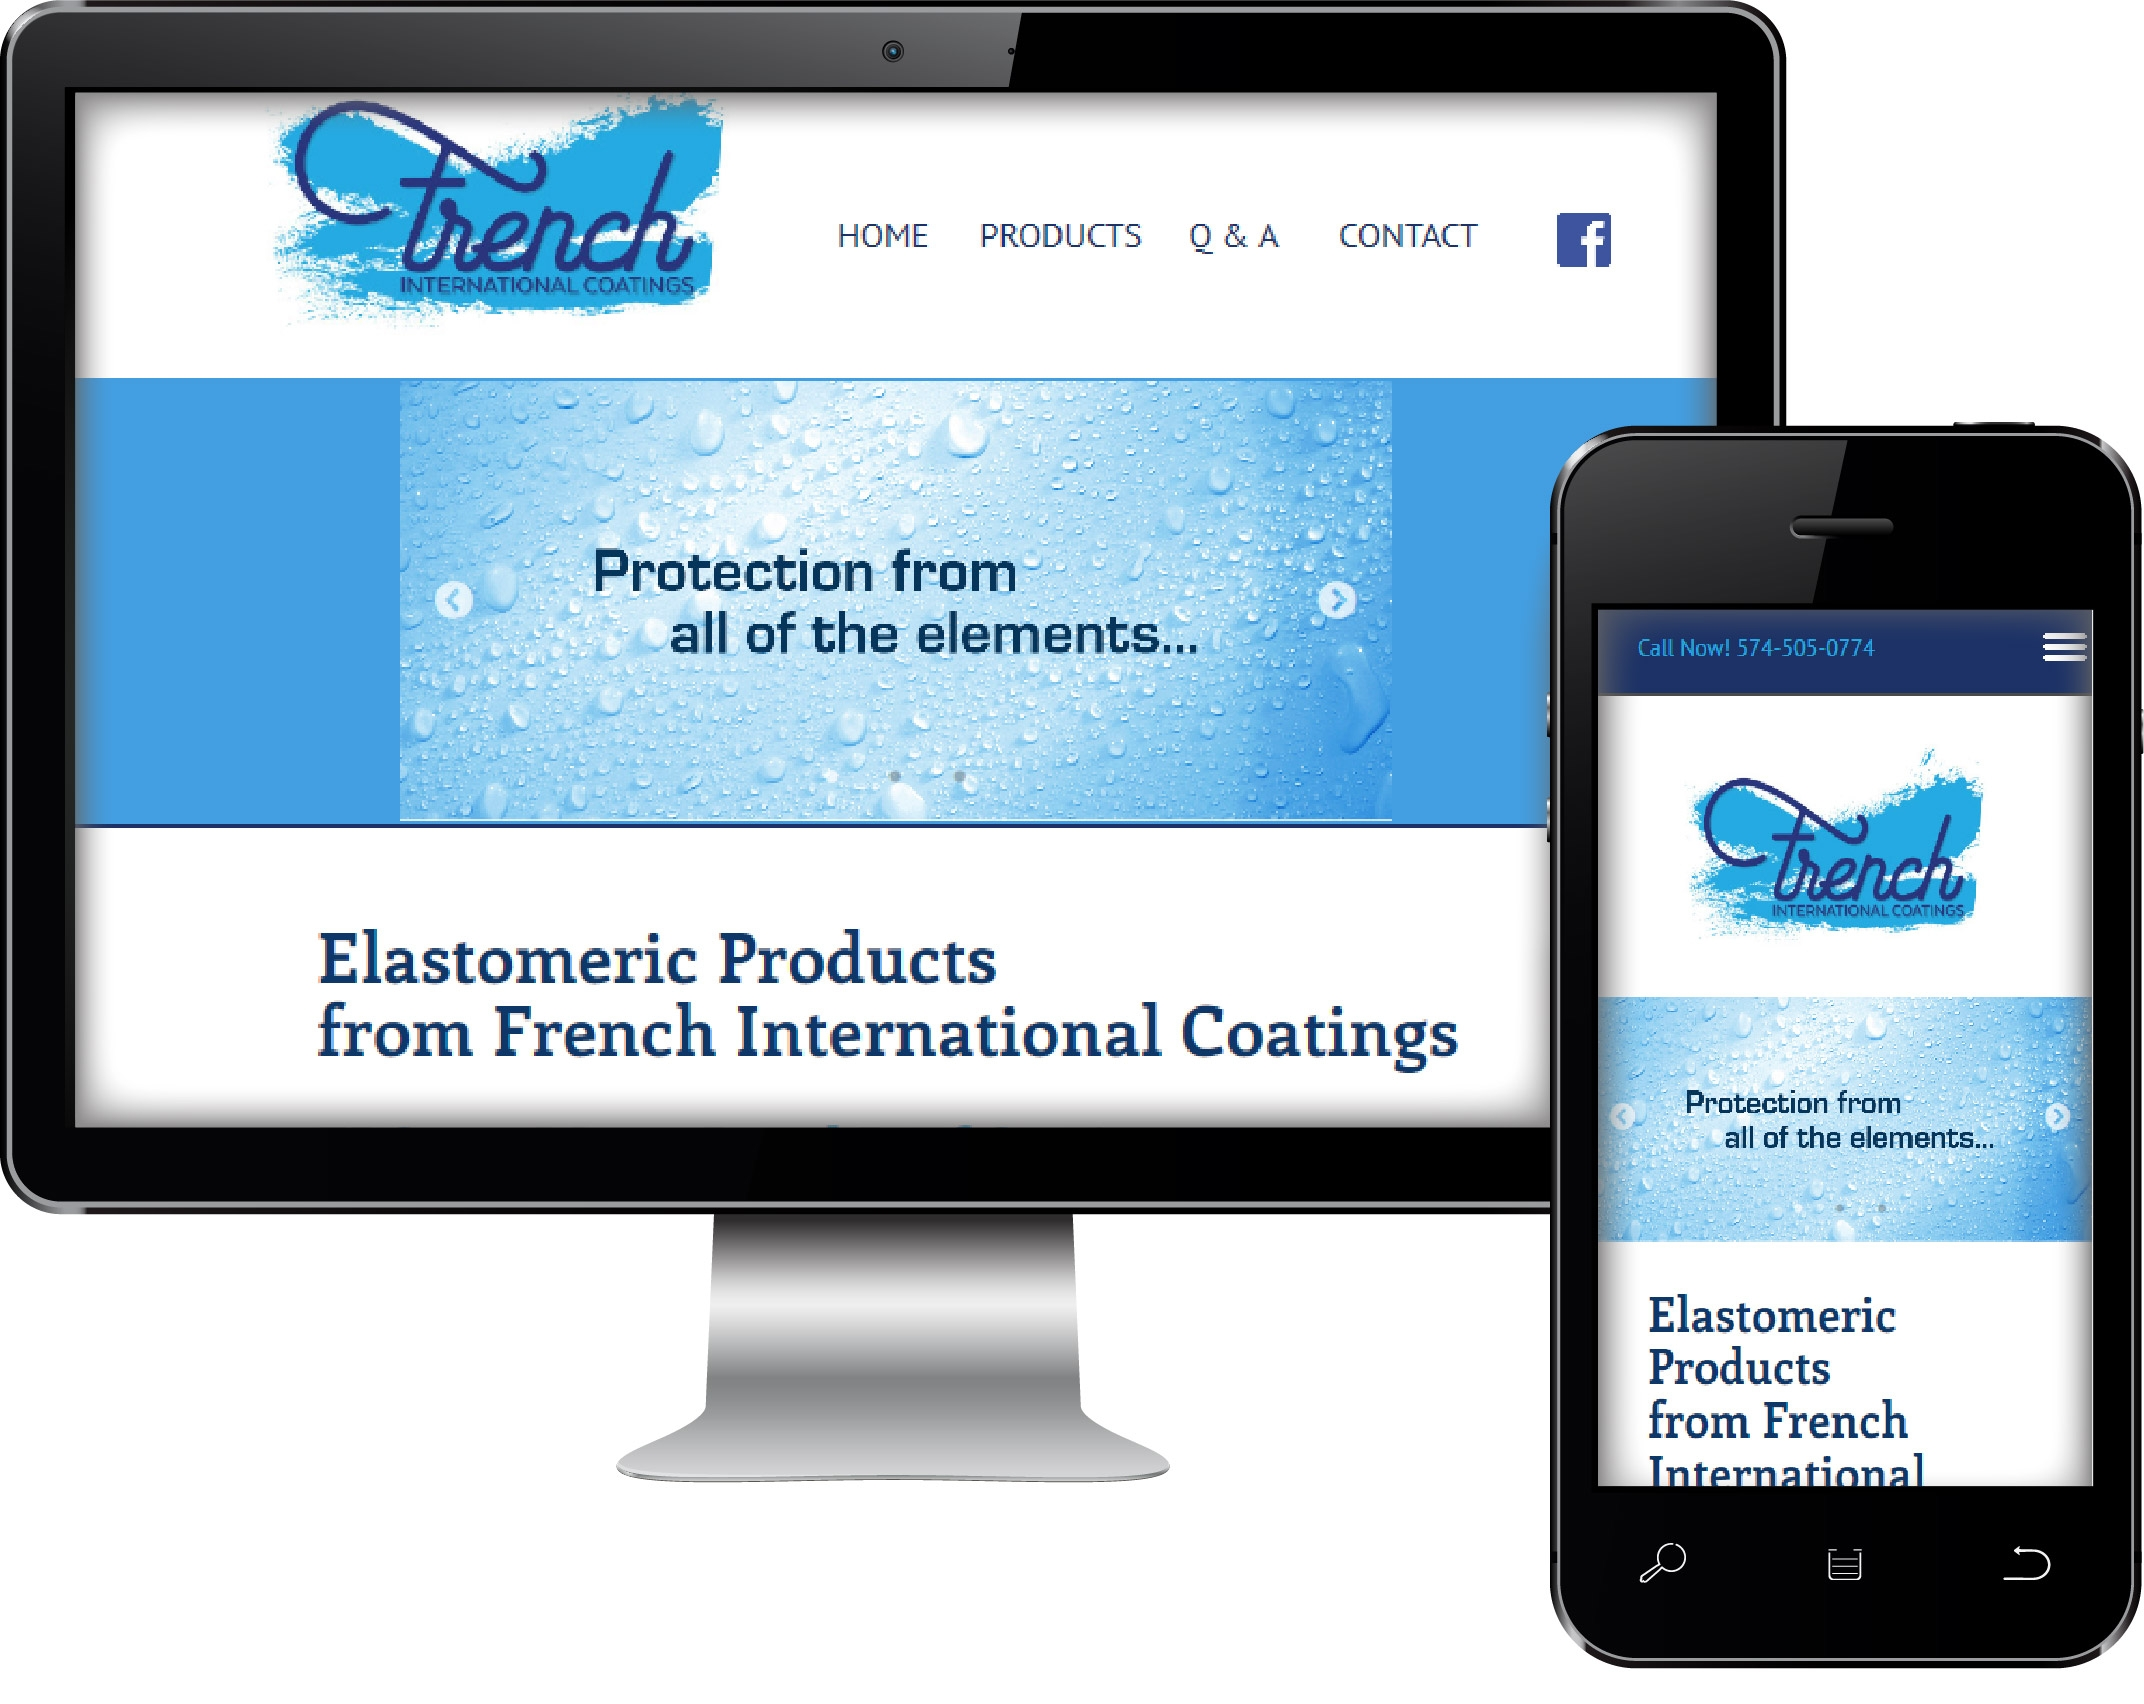 Responsive Web Site Design on Mobile Phone and Desktop